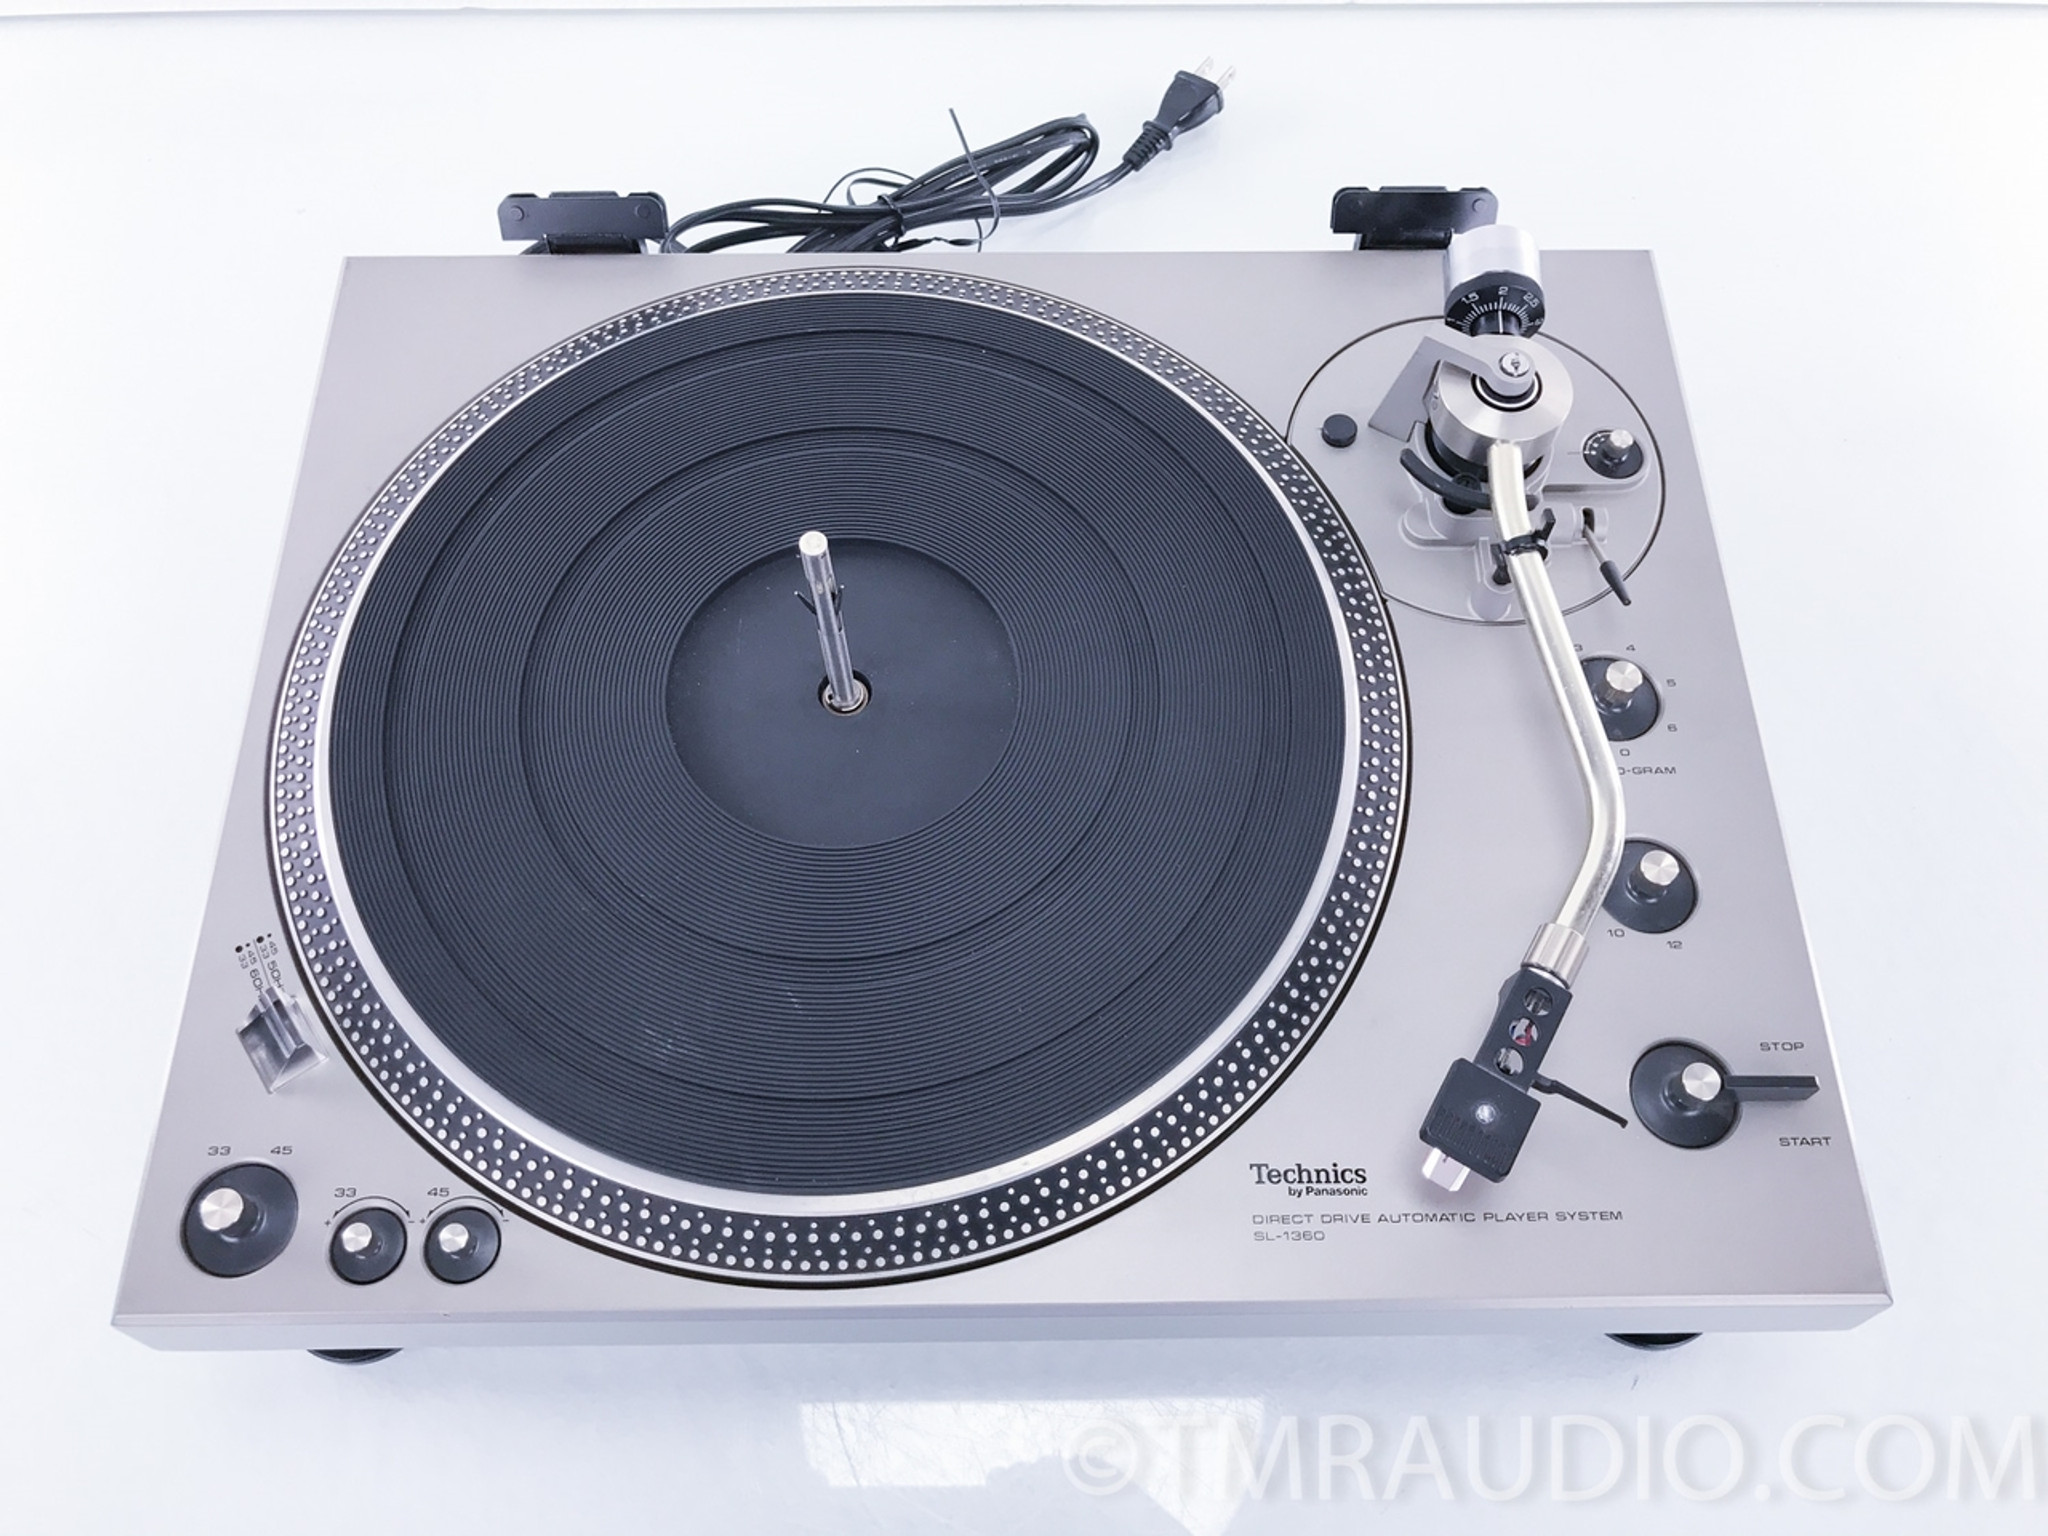 Technics SL-1360 Turntable / Record Player